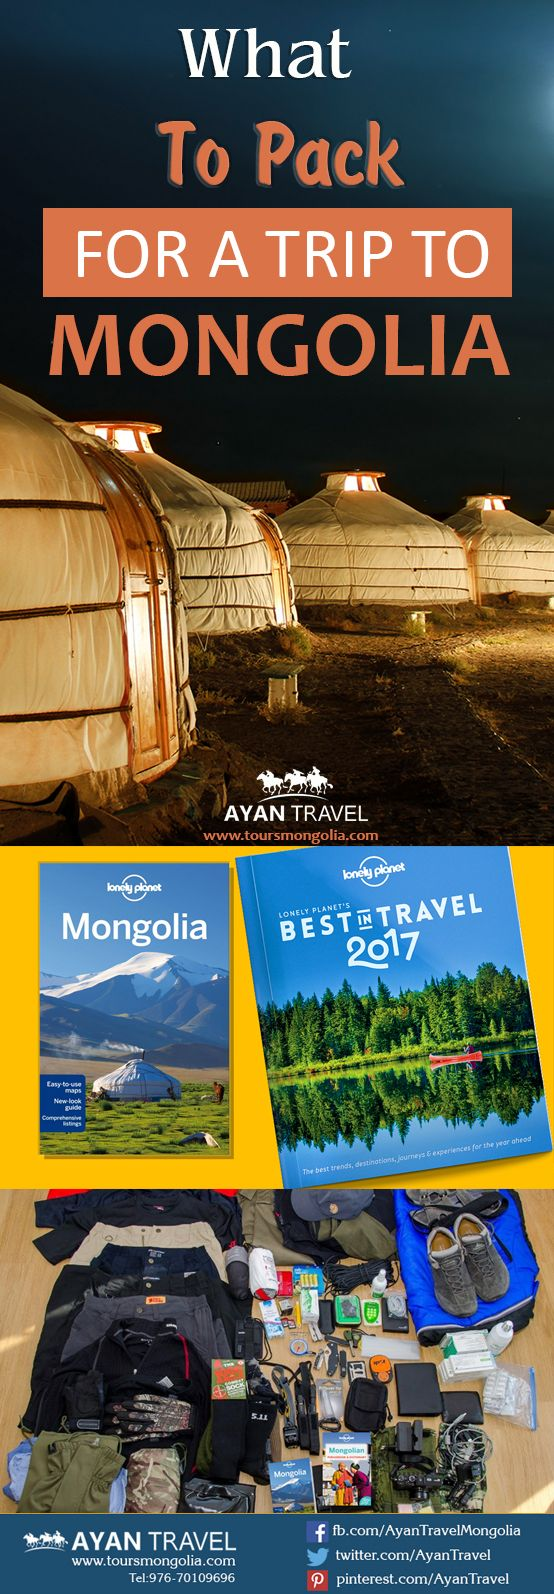 WHAT TO PACK FOR A TRIP TO MONGOLIA